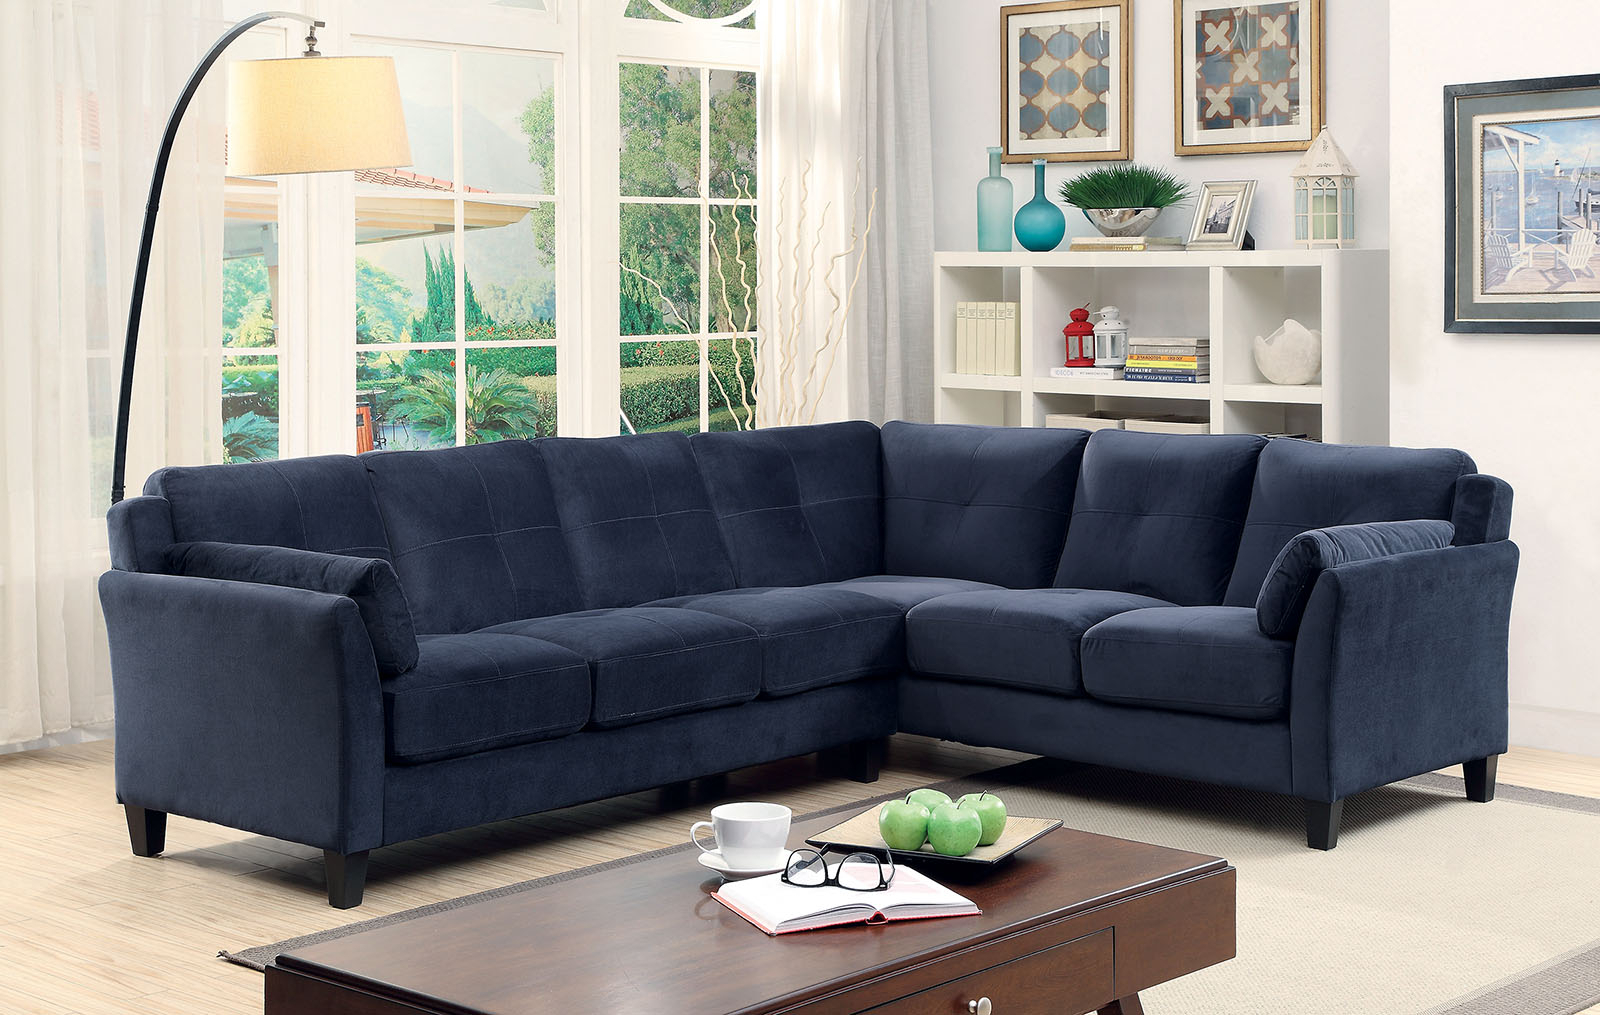 6368Nv Nvay Blue Contemporary Sectional Sofa Furniture Of Regarding Most Recent Paul Modular Sectional Sofas Blue (View 3 of 25)